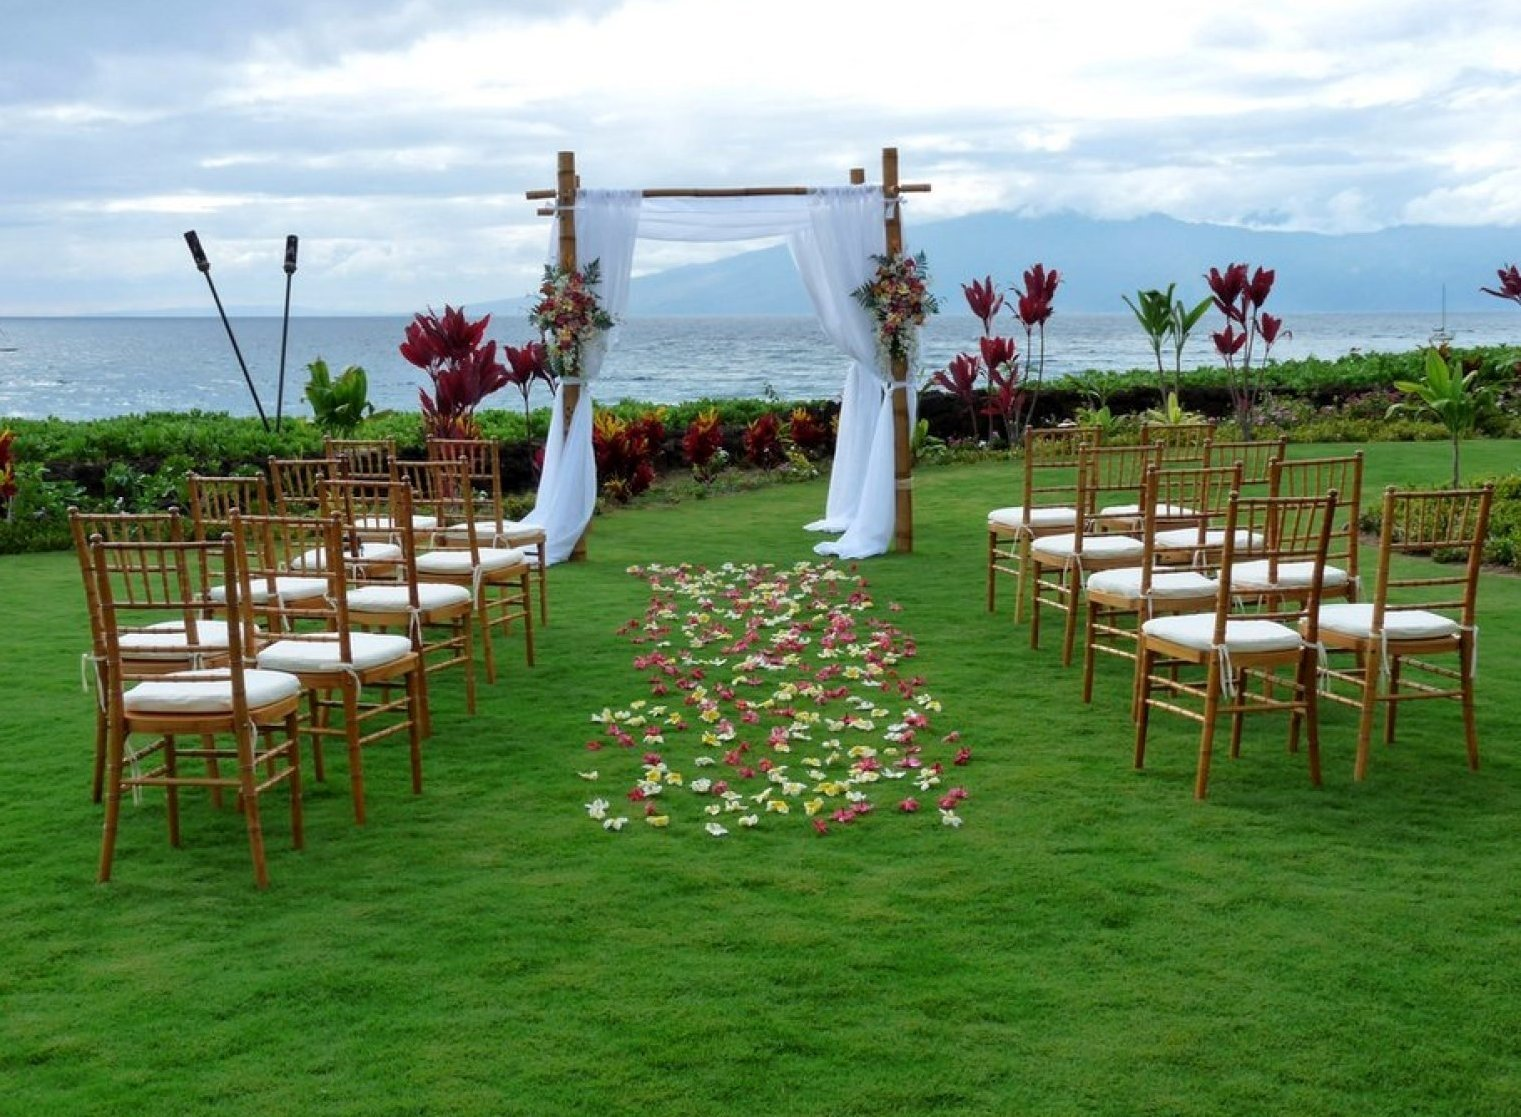 10 Fantastic Small Backyard Wedding Ideas On A Budget cool small backyard wedding ideas on a budget pics inspiration